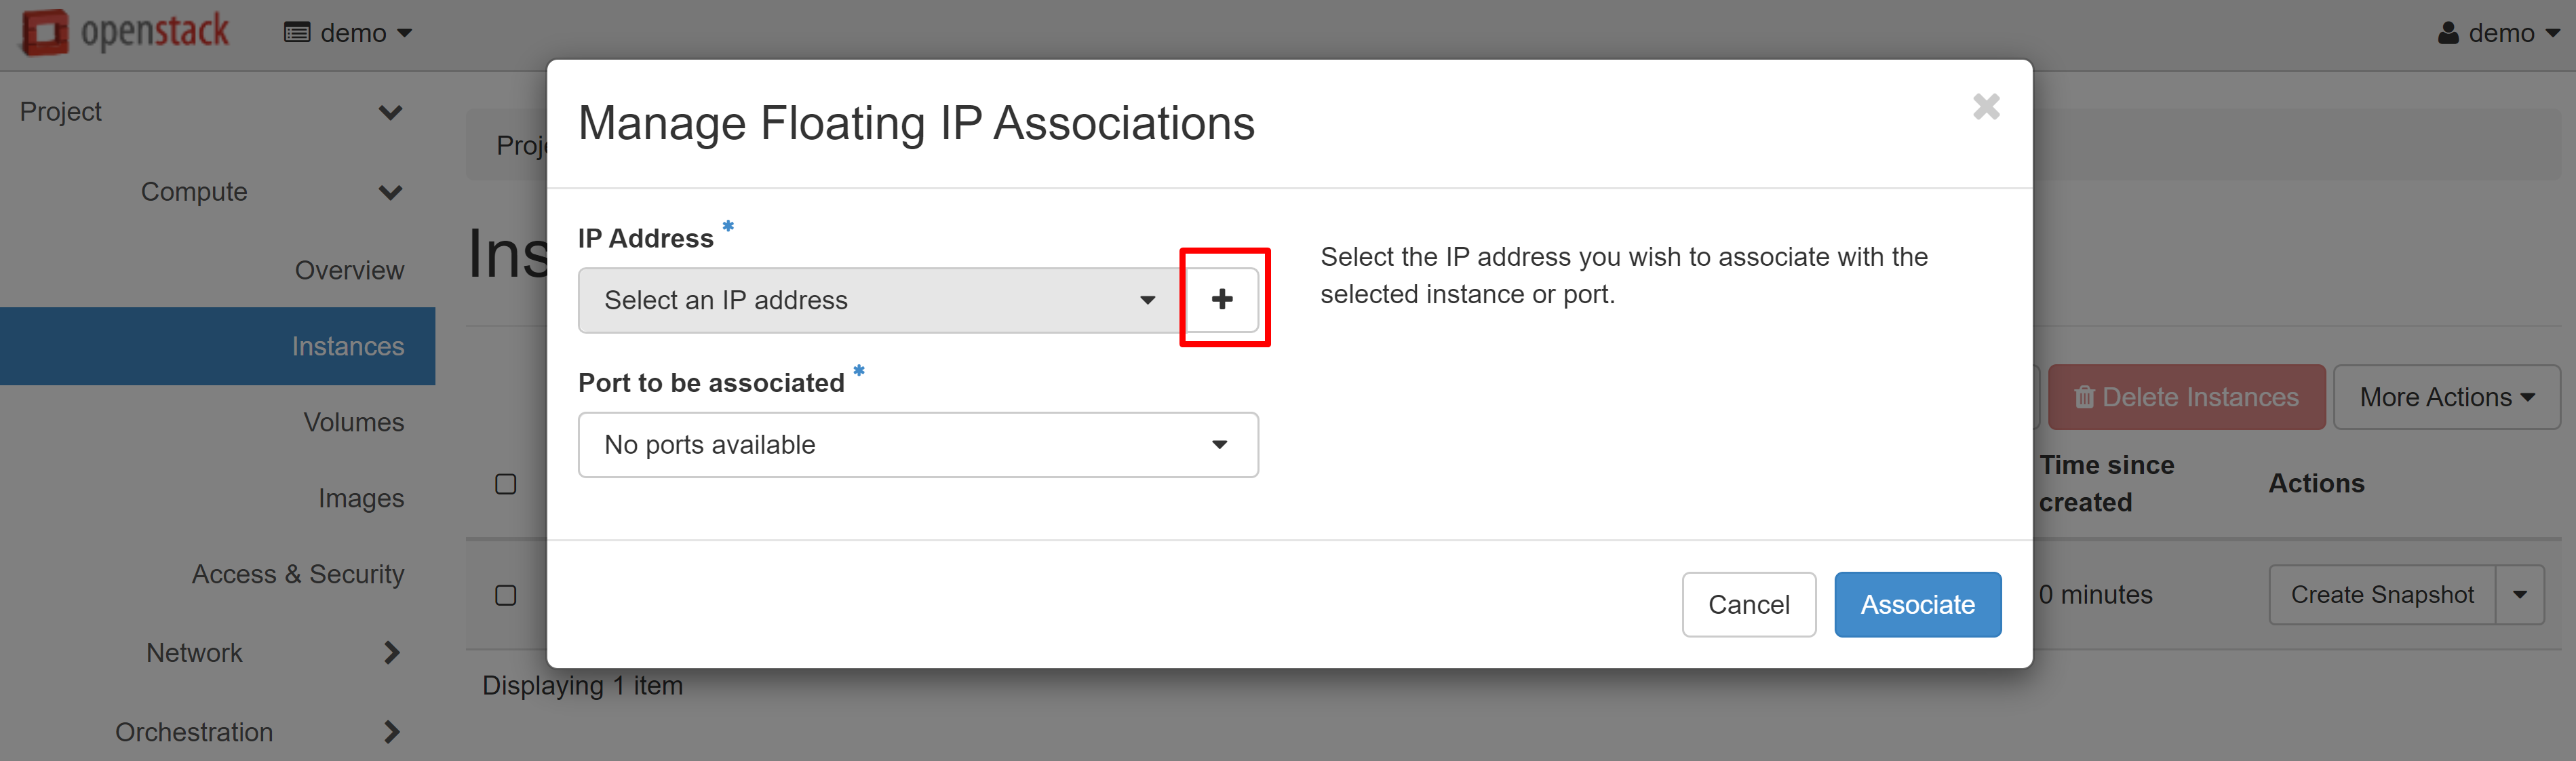 ASSOCIATE FLOATING IP